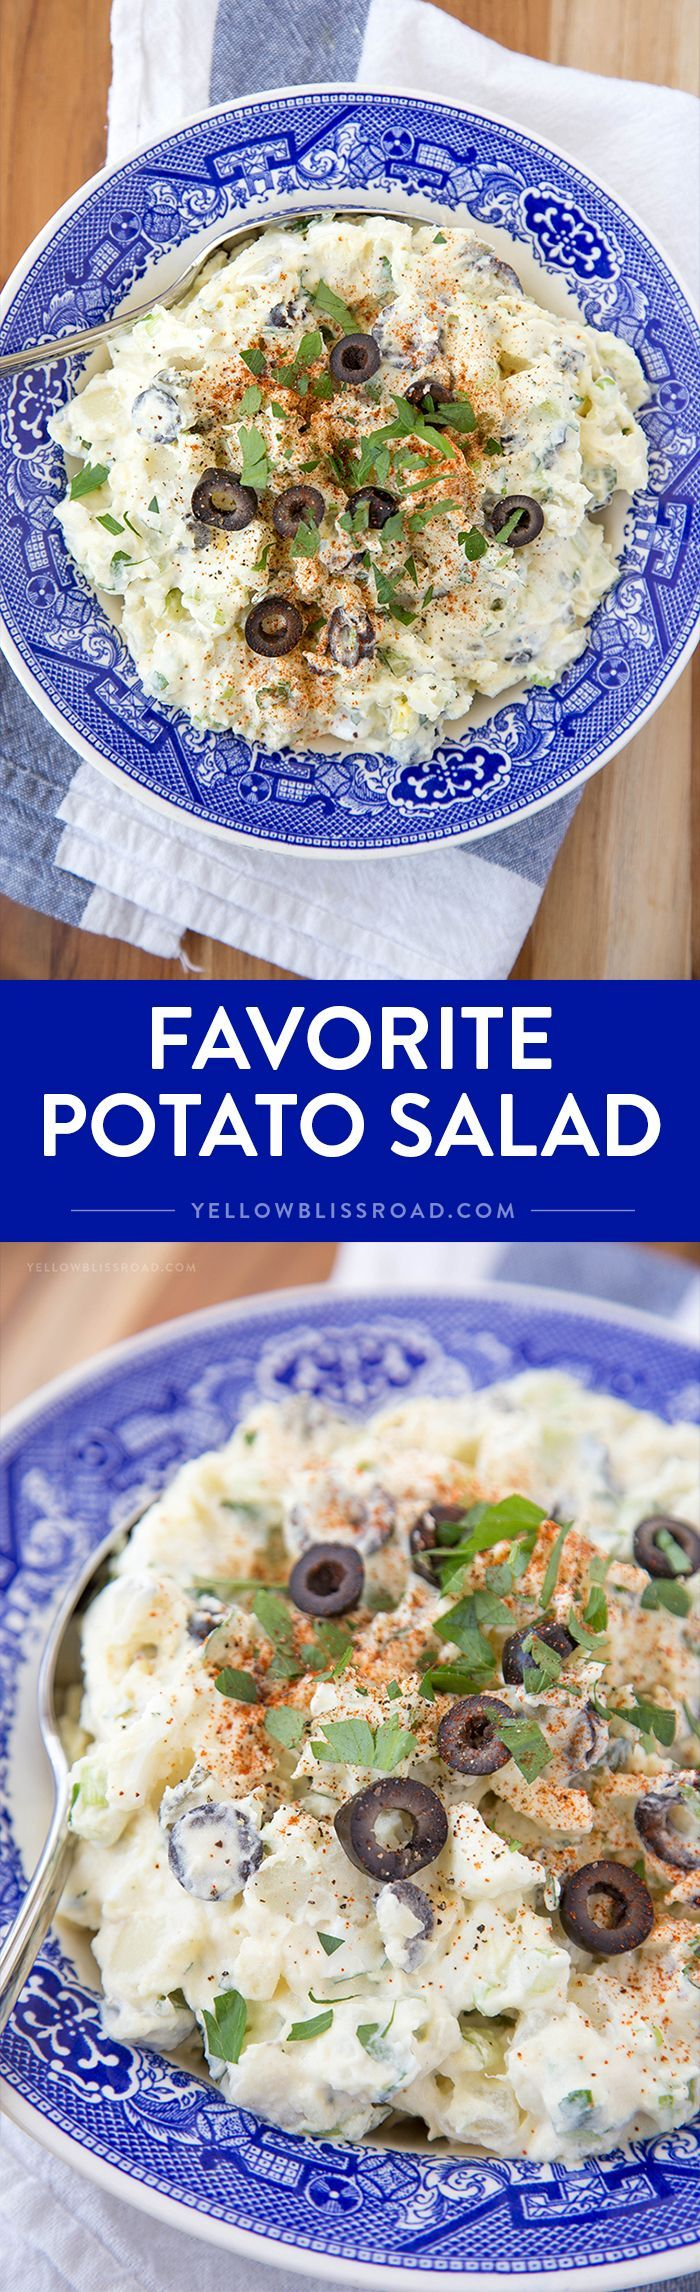 Favorite Potato Salad - a classic summer side dish for barbecues and picnics, with pickles, olives and hard boiled eggs.